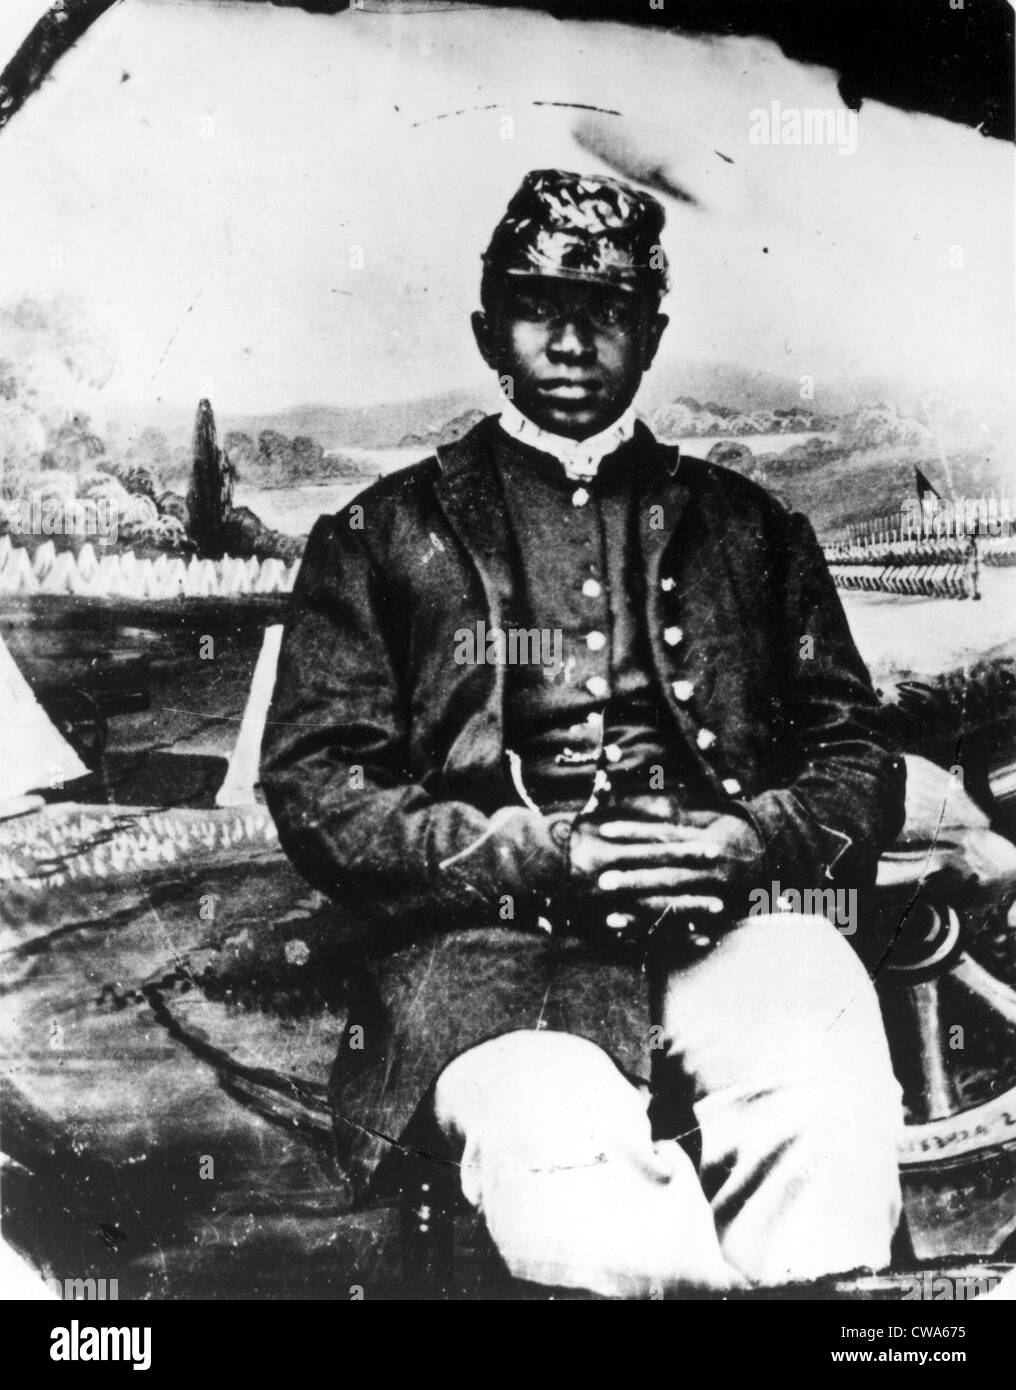 CIVIL WAR-Soldier in the 54th Infantry during the Civil War.. Courtesy: CSU Archives / Everett Collection - Stock Image